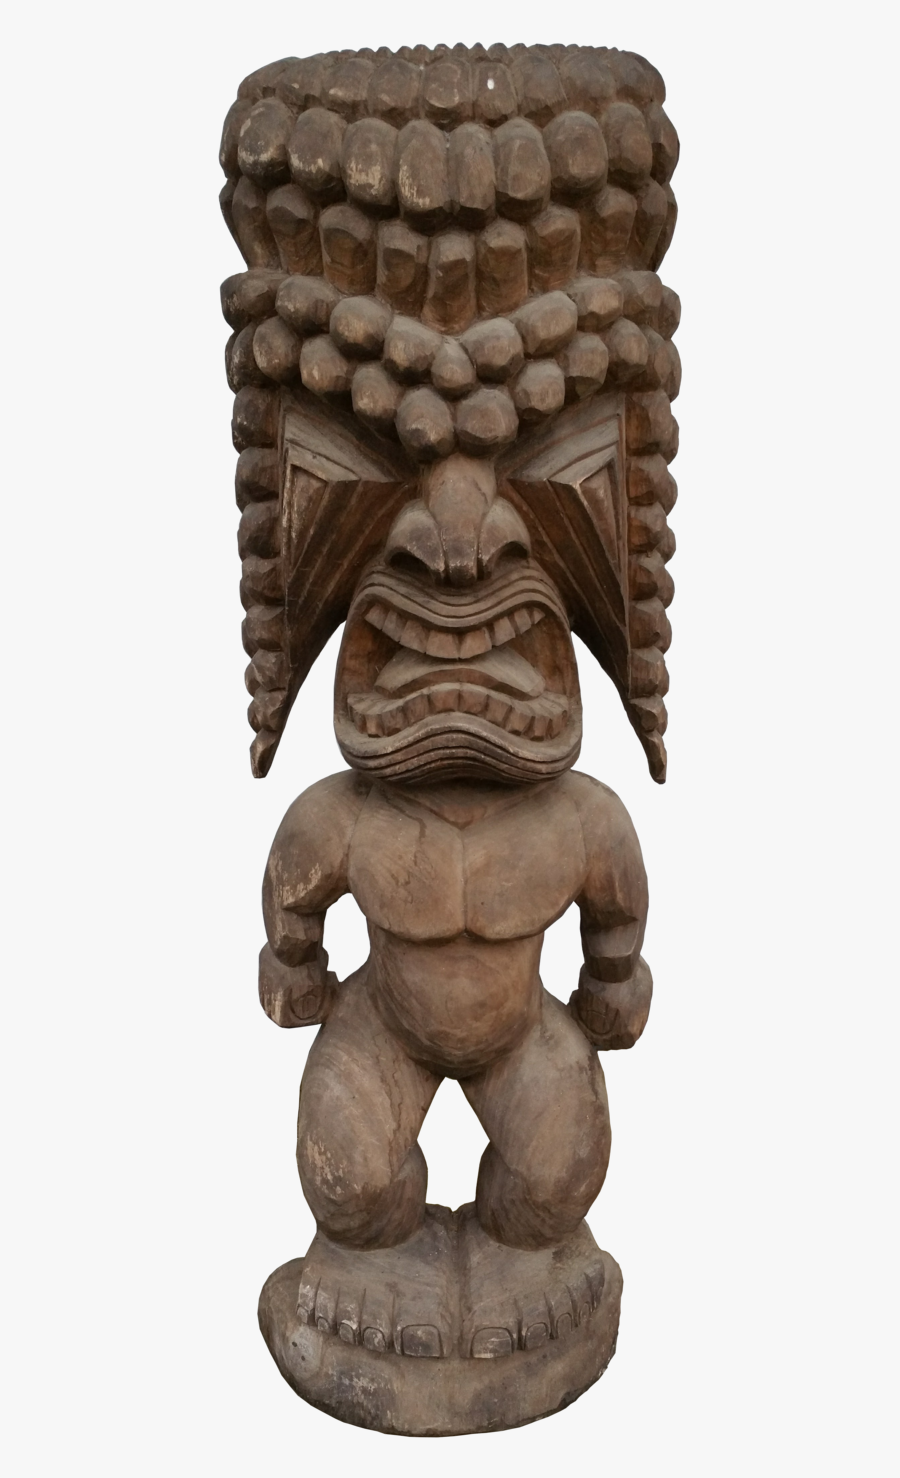 Transparent Totem Pole Png.